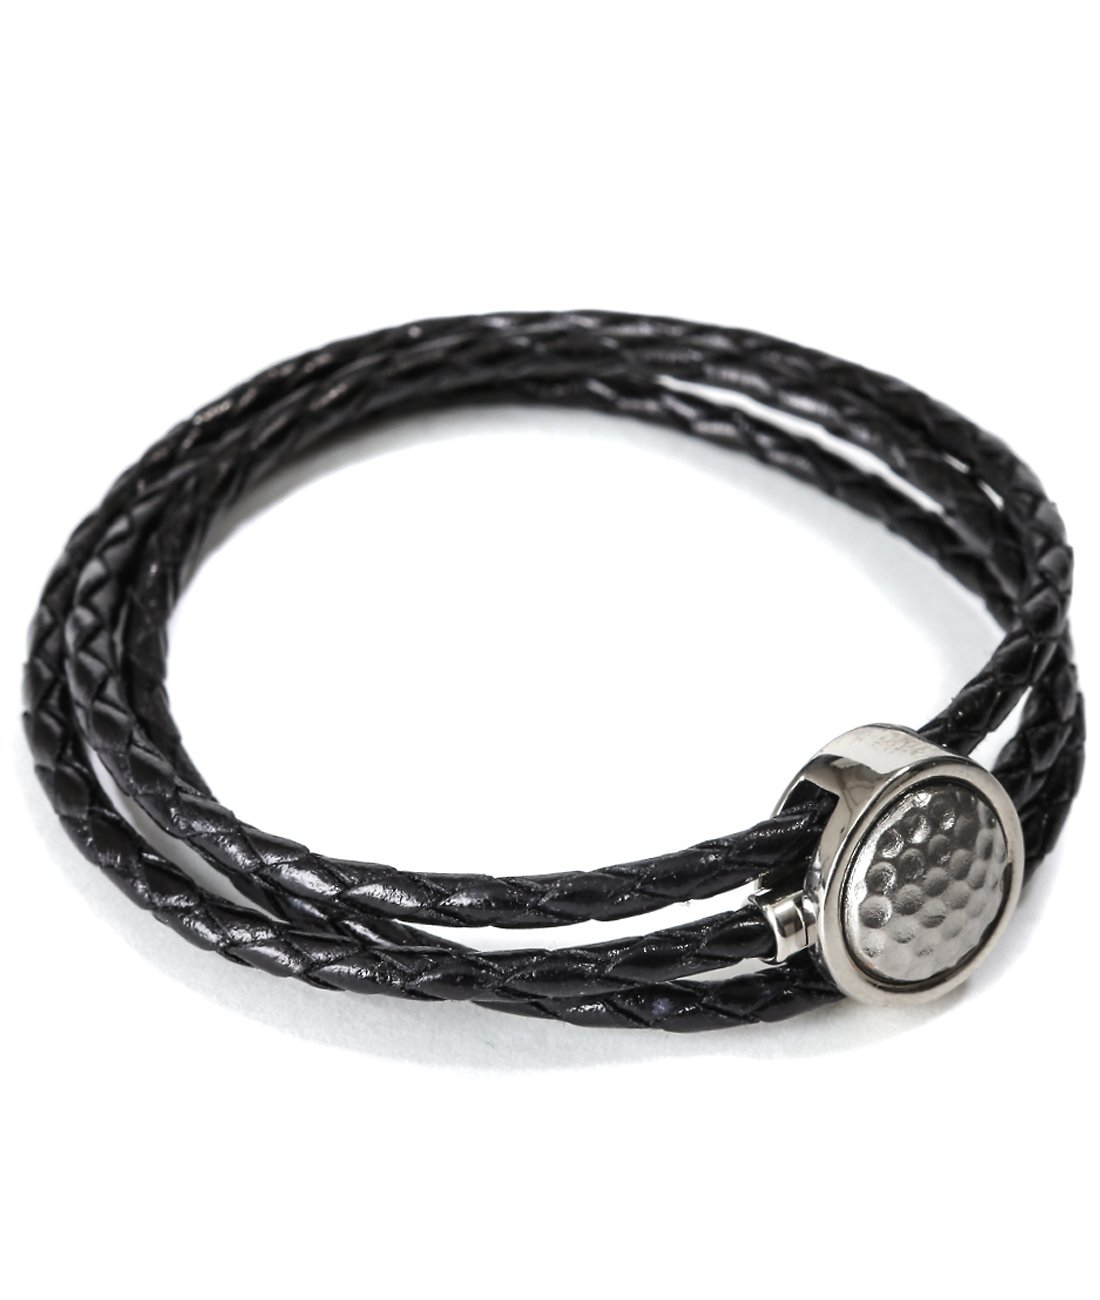 Mon Art Women's Braided Bracelet With Embossed Circle Metal Accent L Black